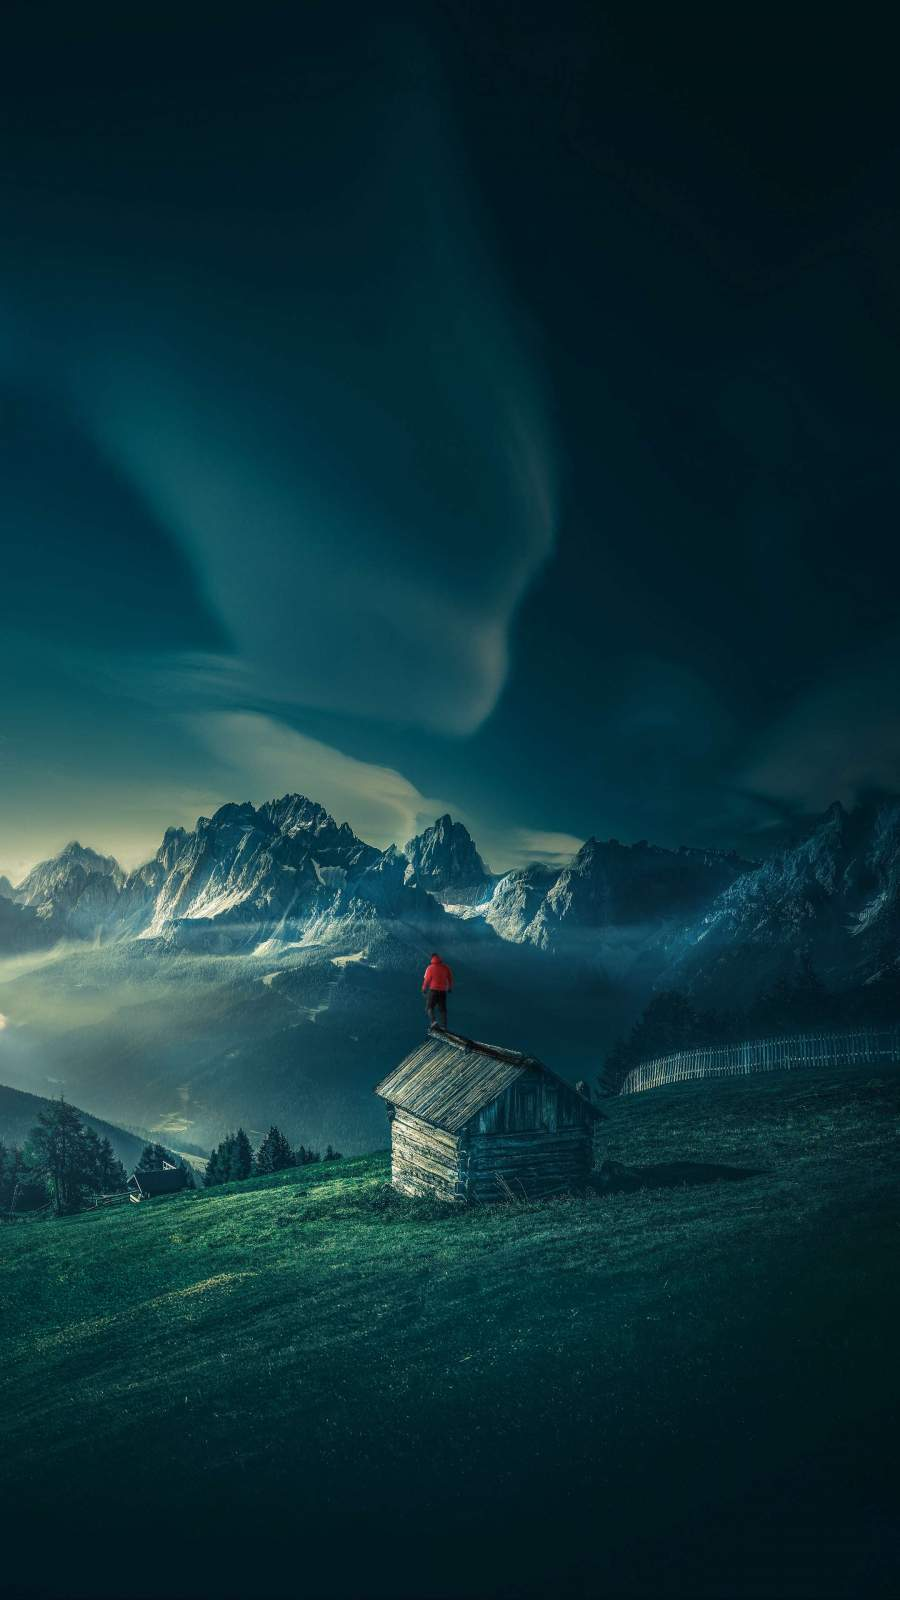 Swiss Mountain House iPhone Wallpaper